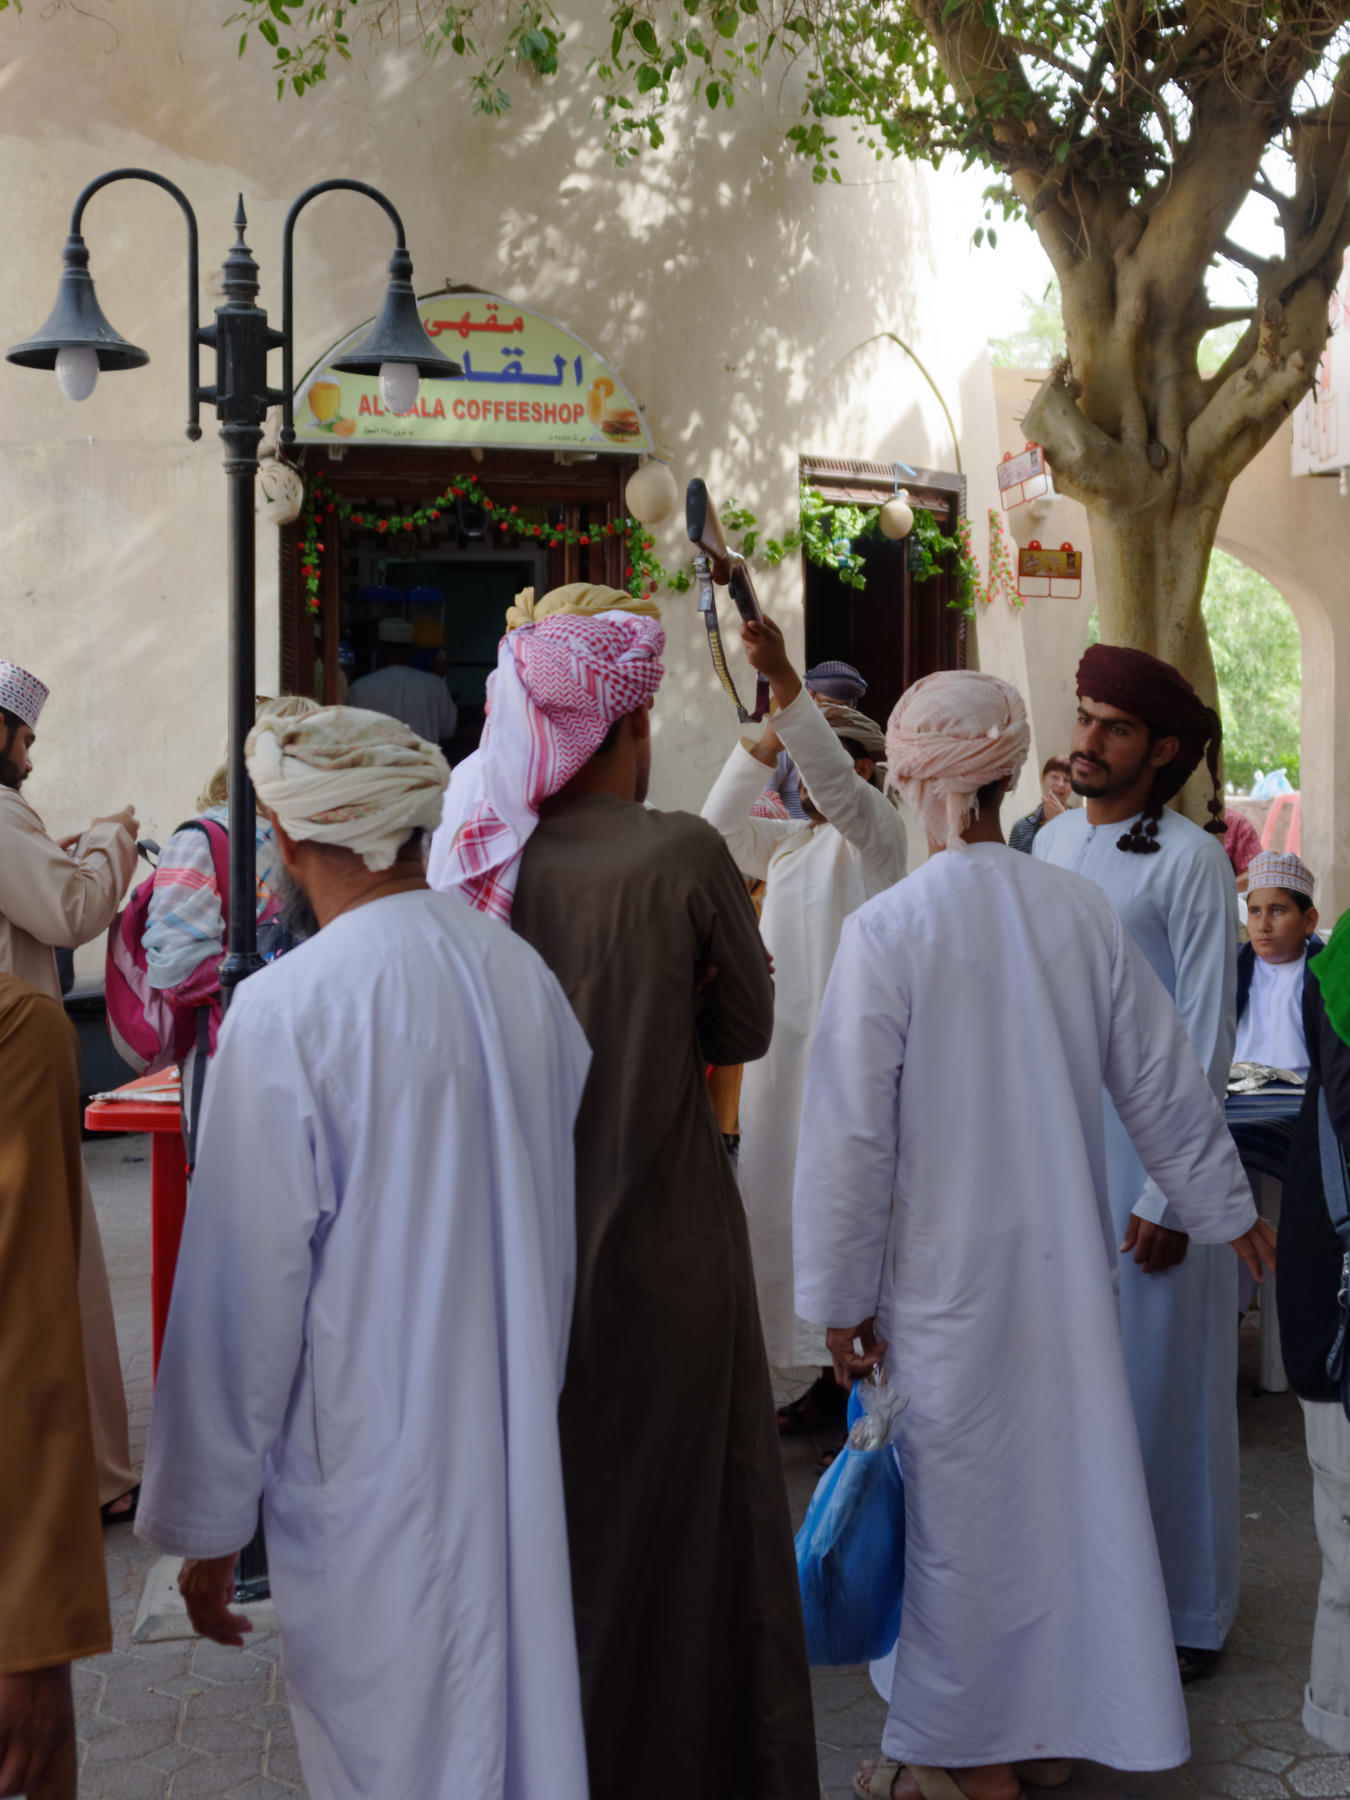 Buying and Selling Guns, Nizwa Souq, Oman